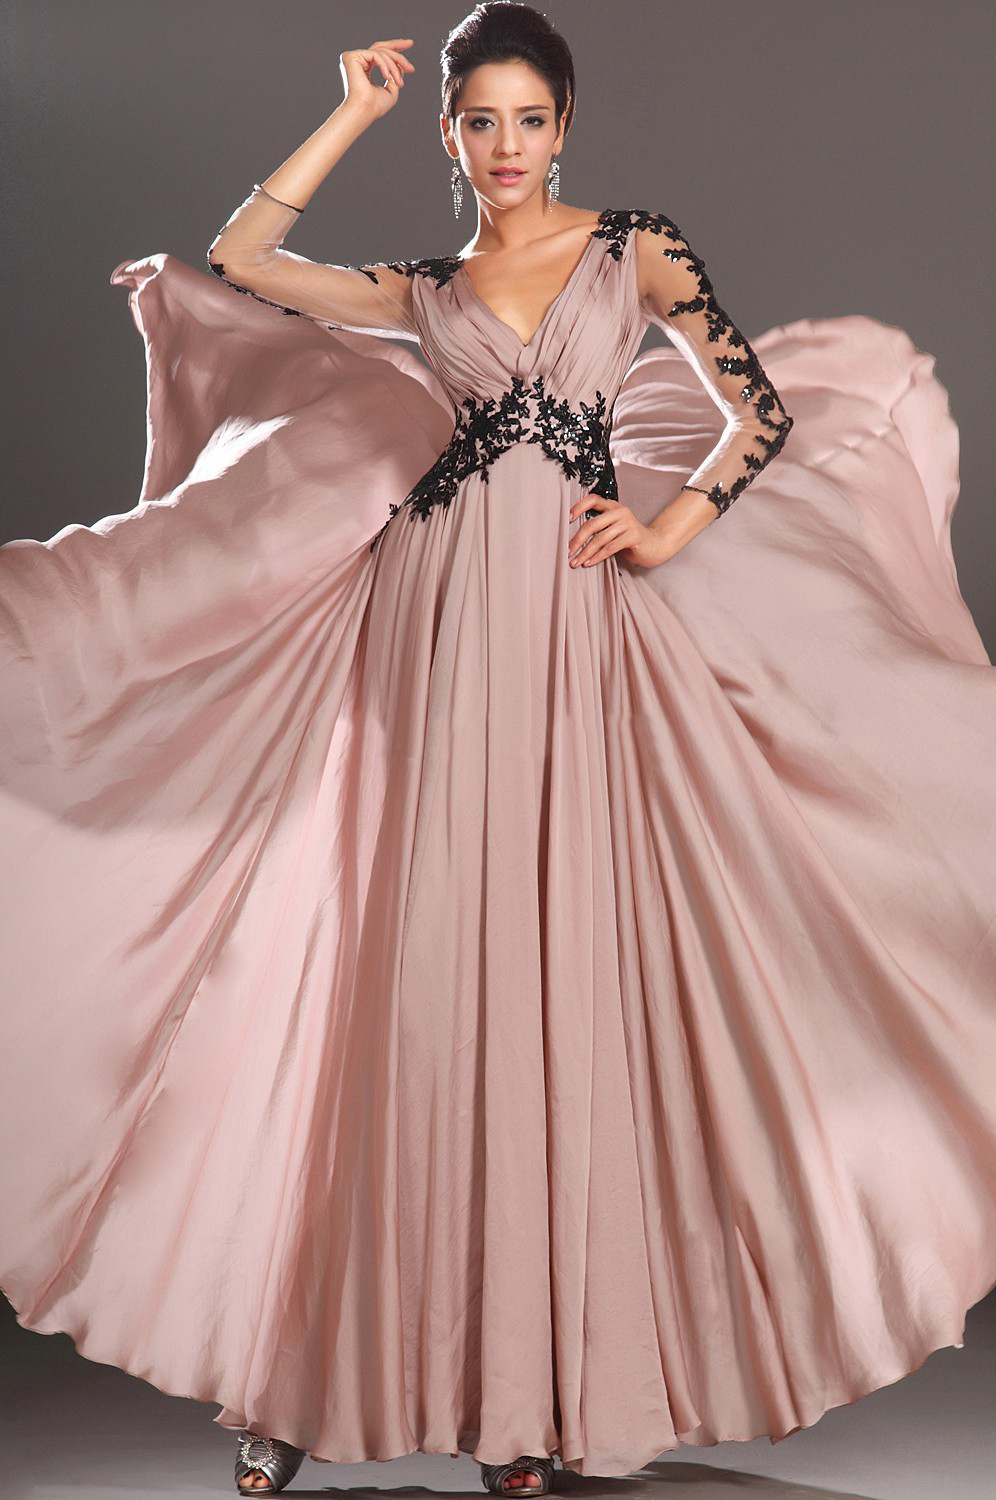 Colorful Evening Gowns Size 18 Collection - Wedding and flowers ...